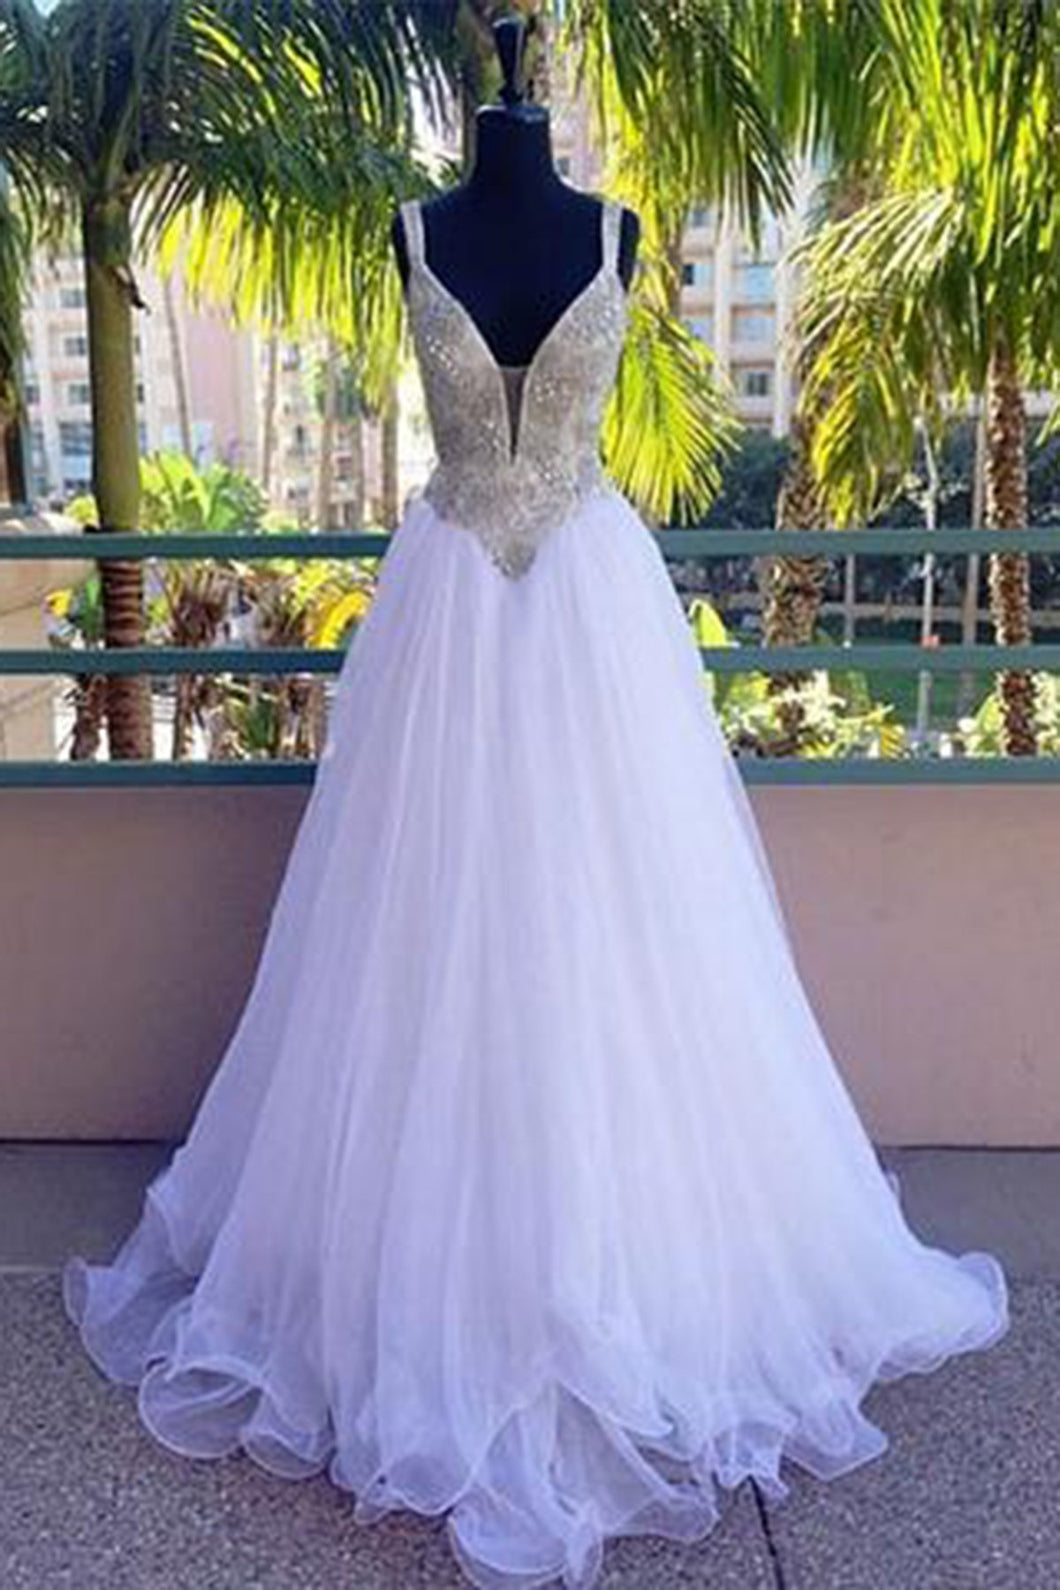 Sweet 16 Dresses | Stylish white tulle long sequins wedding dress, lace senior prom dress